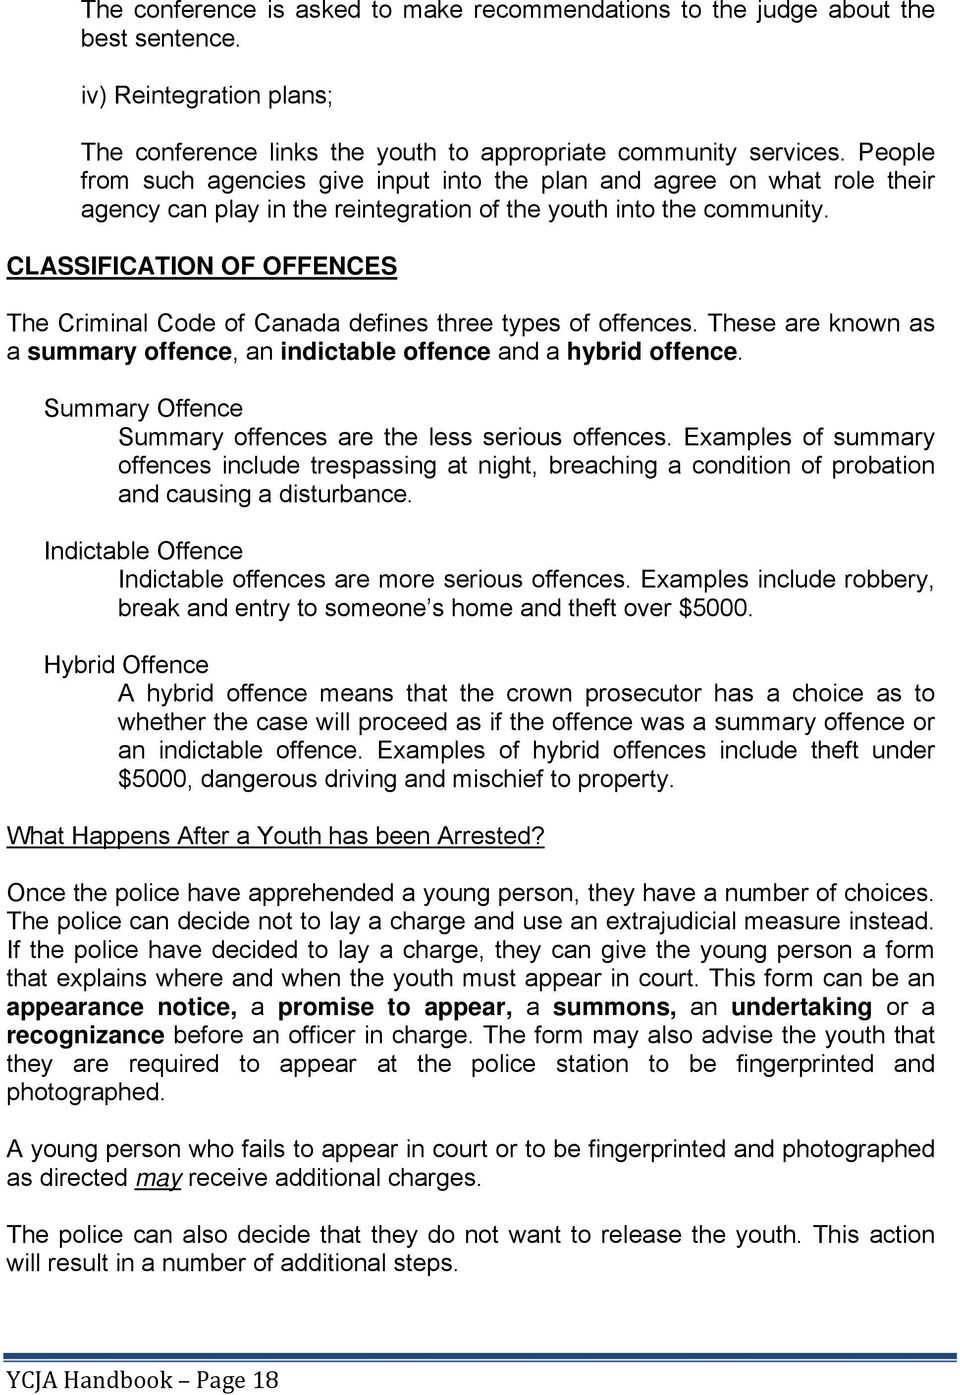 CLASSIFICATION OF OFFENCES The Criminal Code of Canada defines three types of offences. These are known as a summary offence, an indictable offence and a hybrid offence.